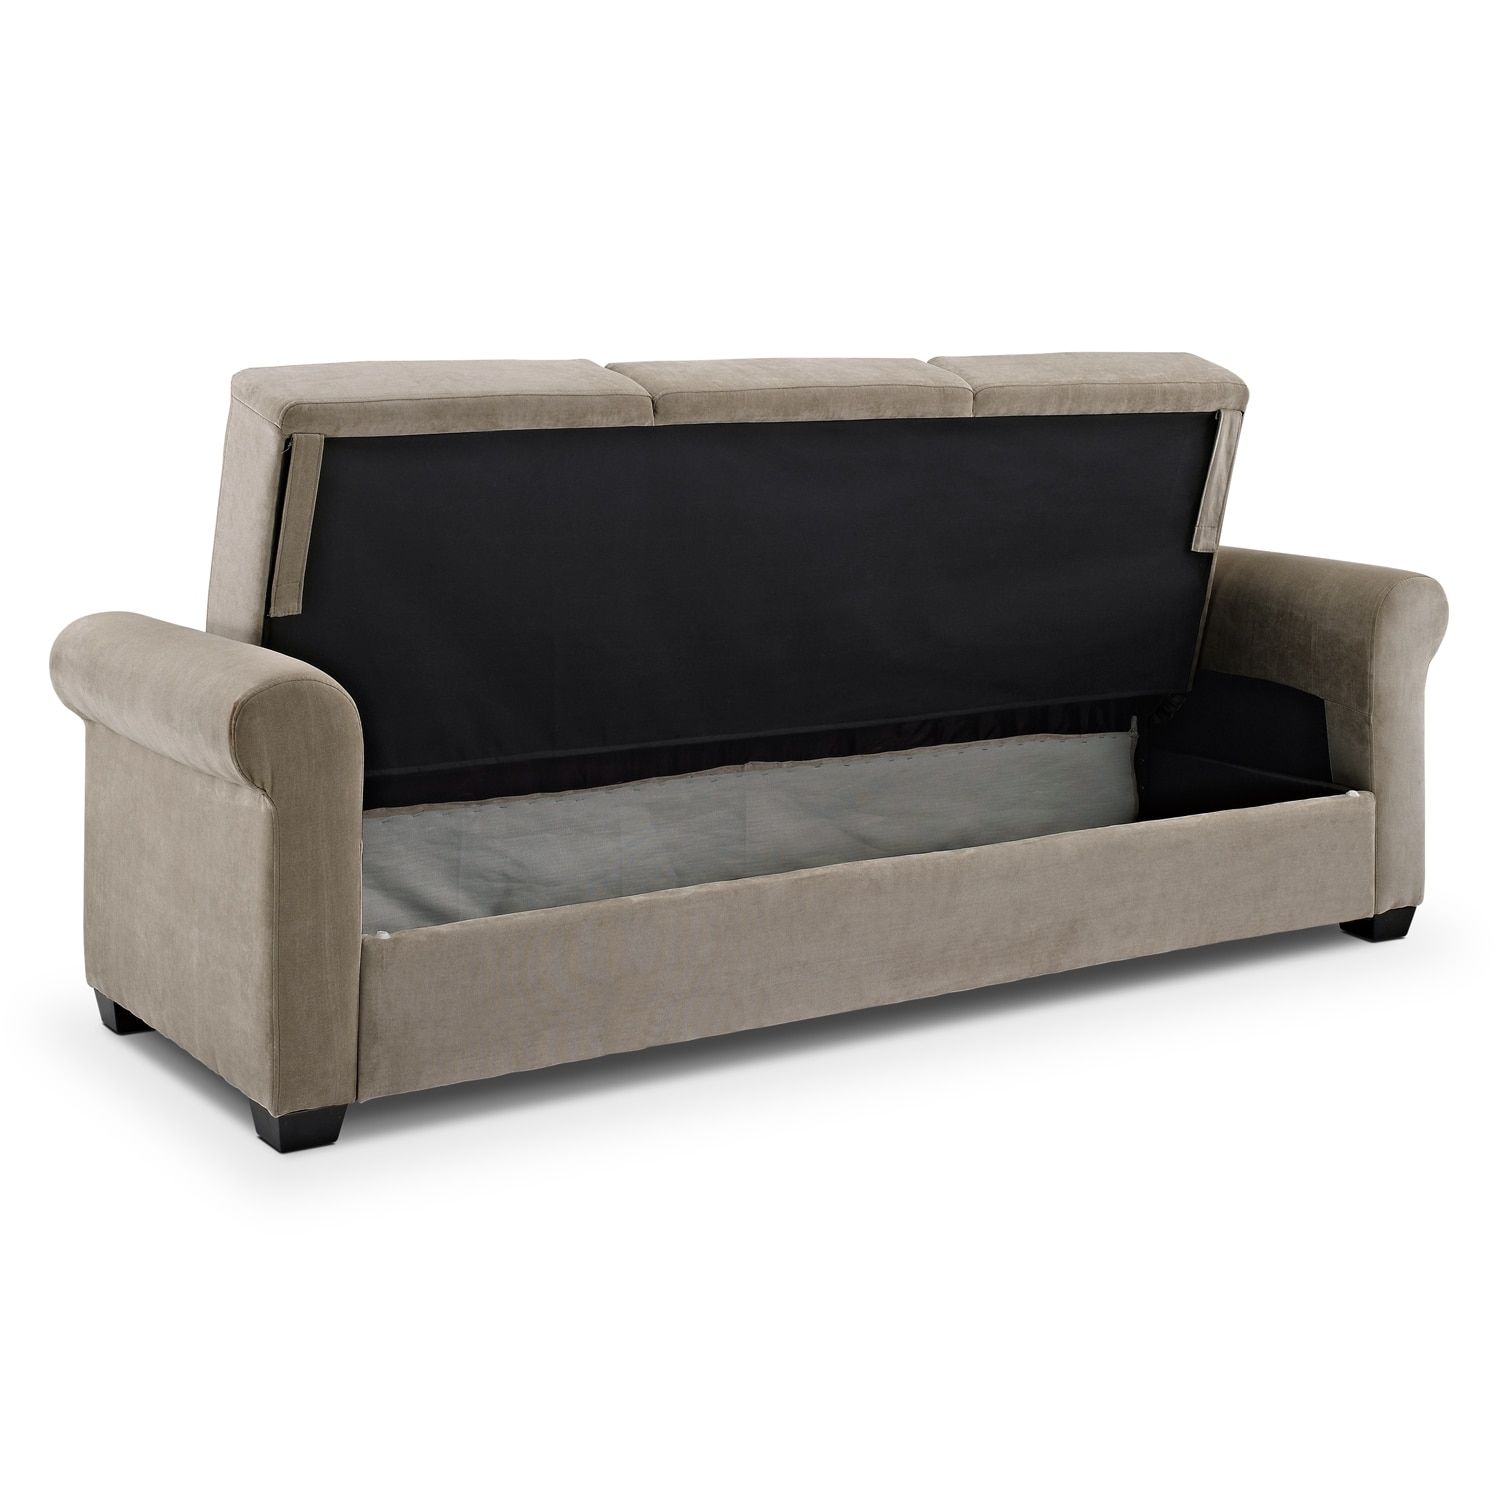 amazingly versatile the thomas futon sofa bed with storage is the  fort and joy  amazingly versatile the thomas futon sofa bed      rh   pinterest